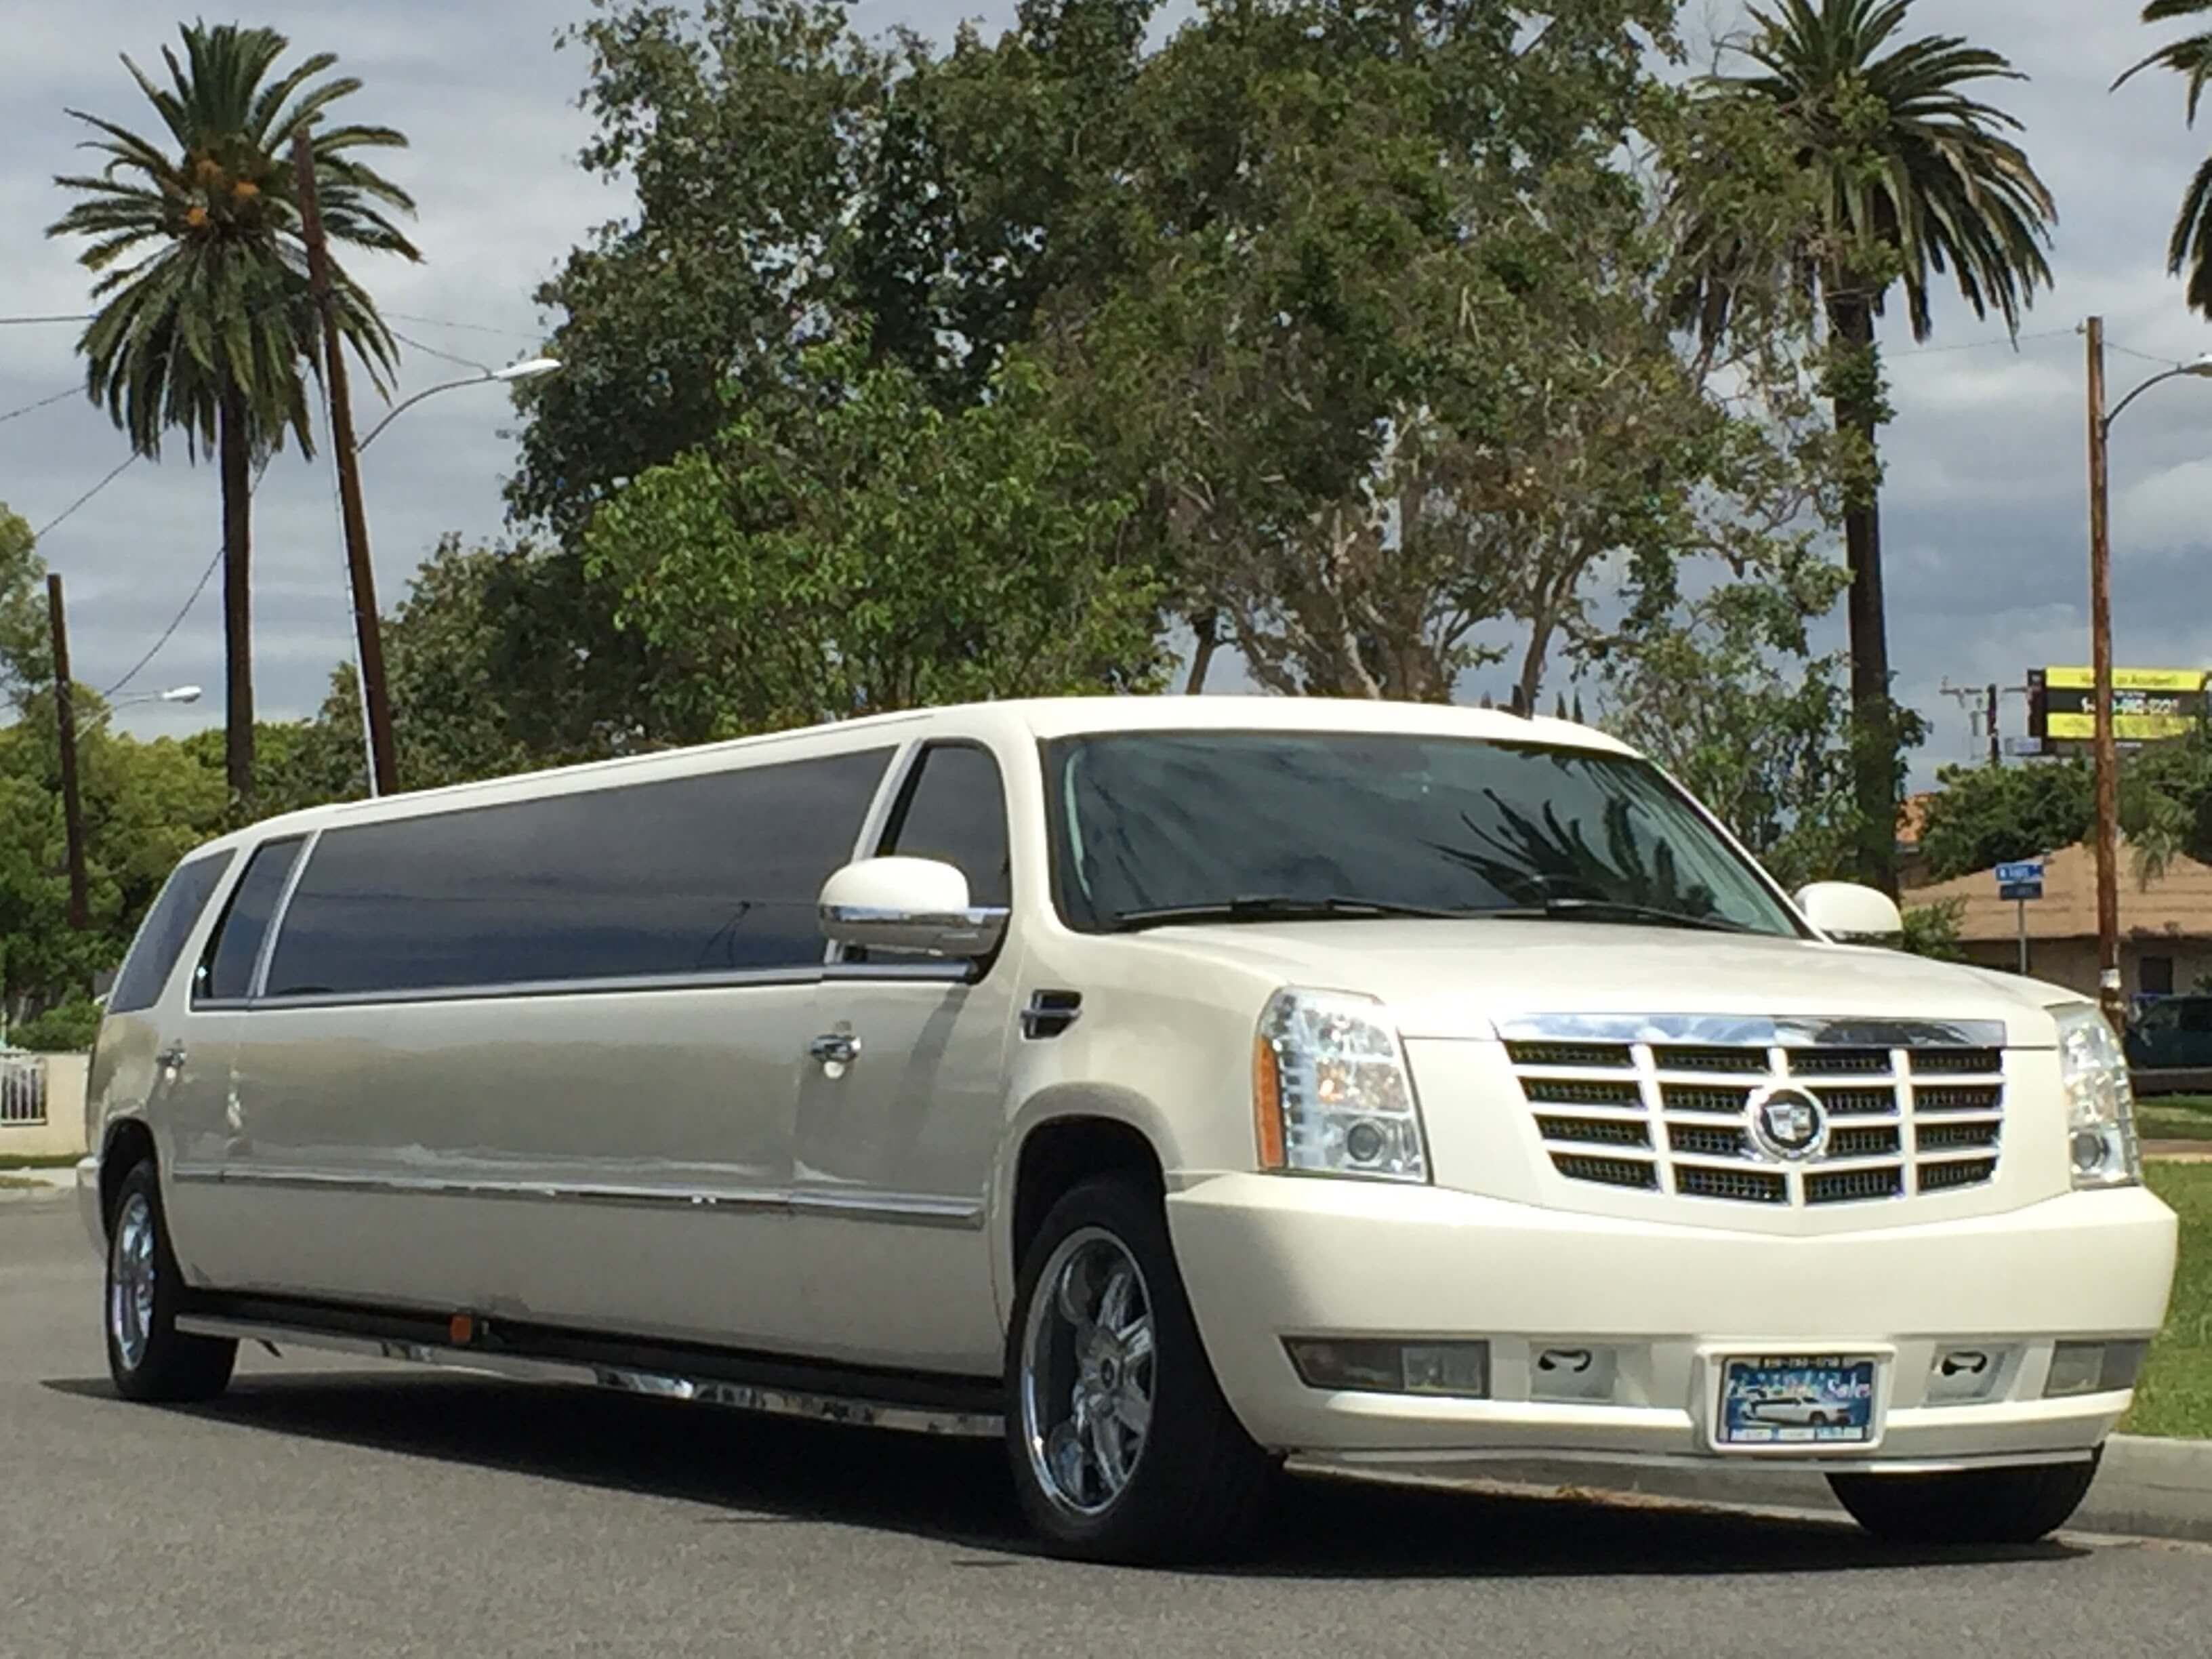 Limousine Cadillac: specifications, description and interesting features